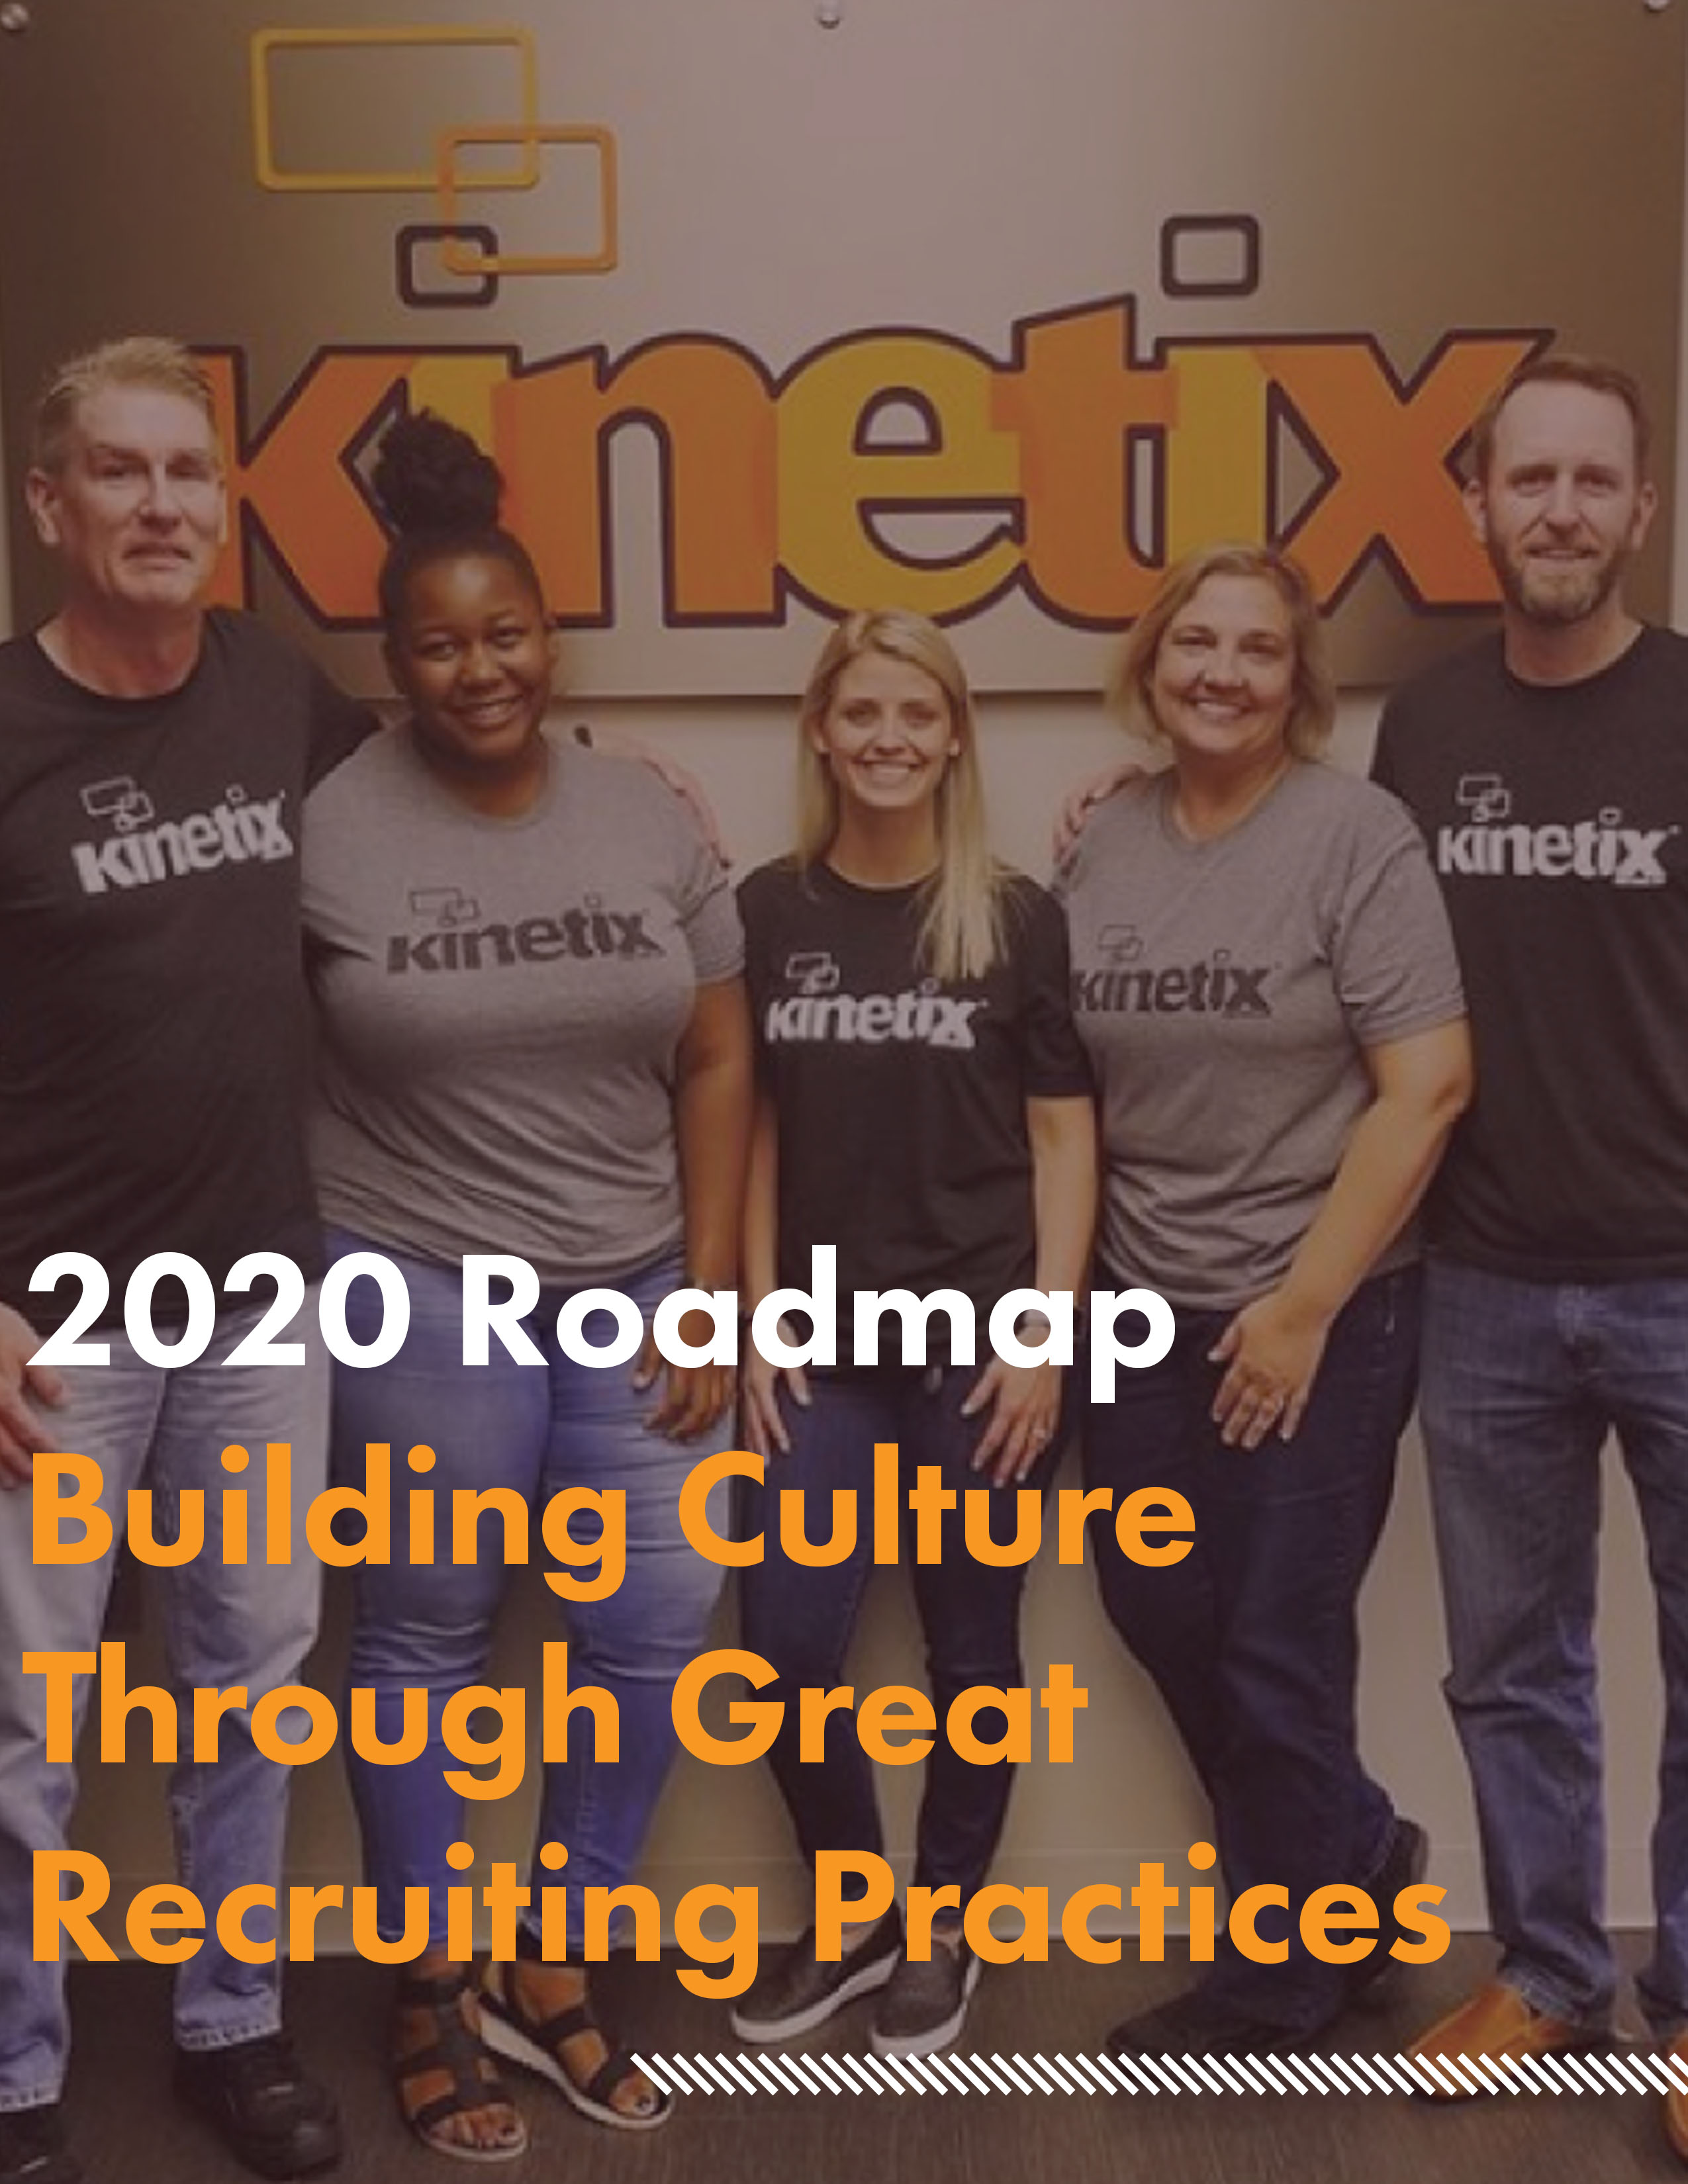 2020 Roadmap: Building Culture Through Great Recruiting Practices